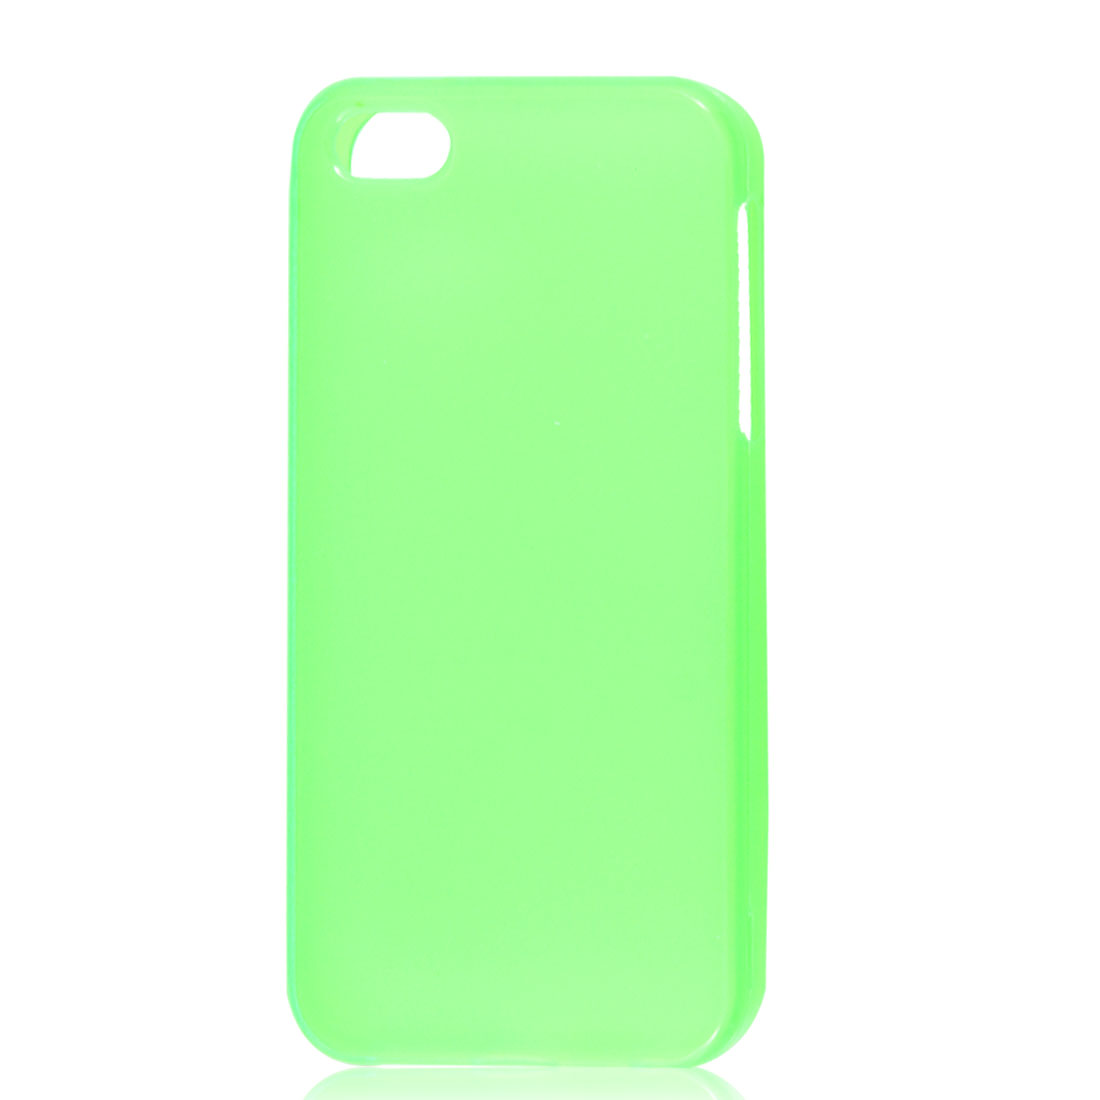 Clear Green TPU Soft Case Cover for Apple iPhone 5 5G 5th